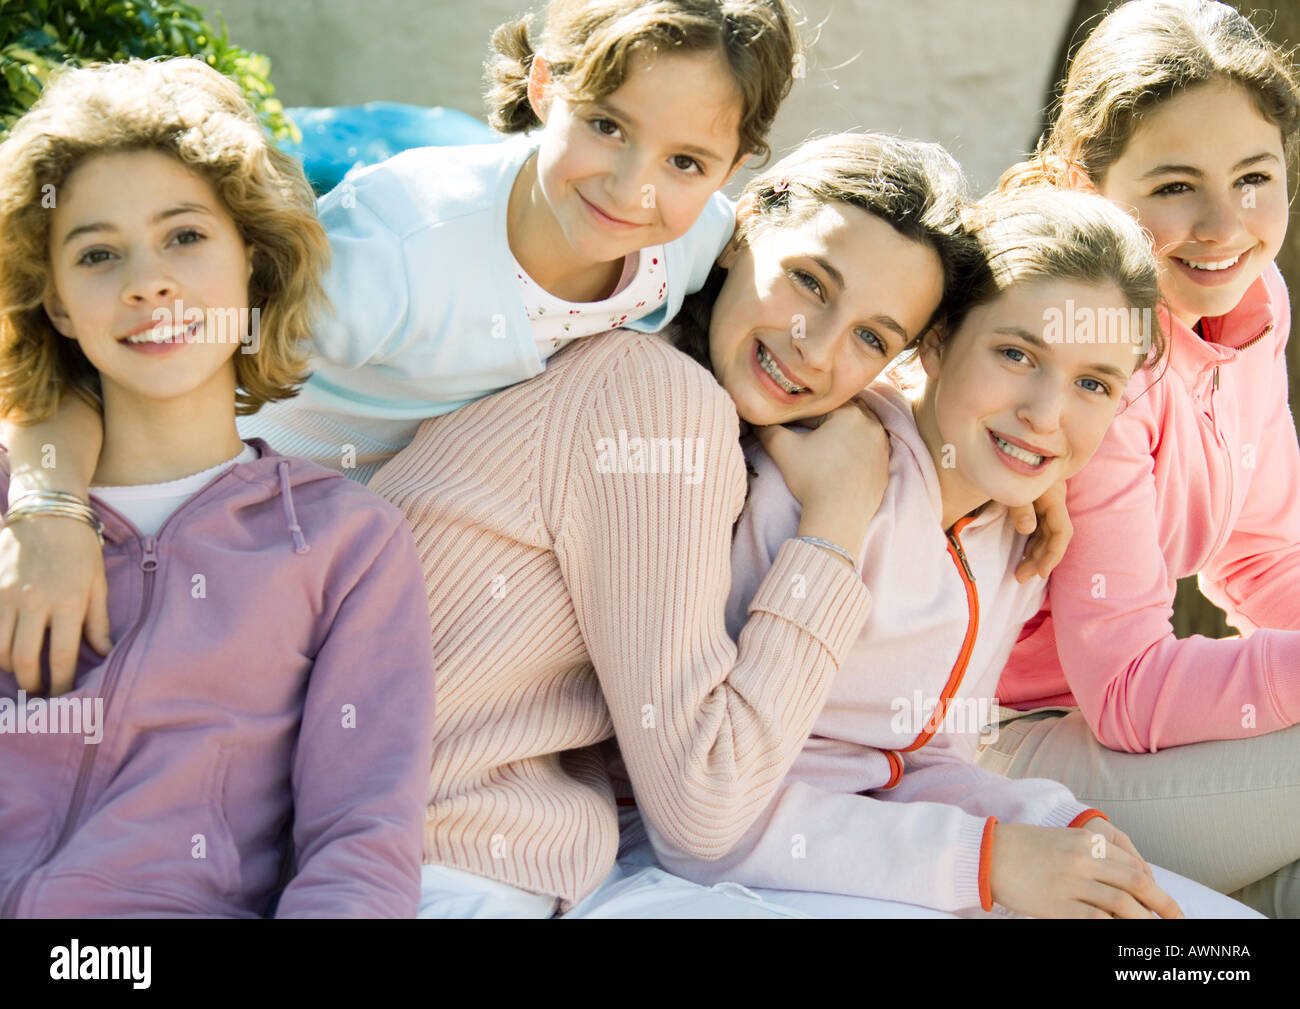 Group of preteen girls, smiling - Stock Image